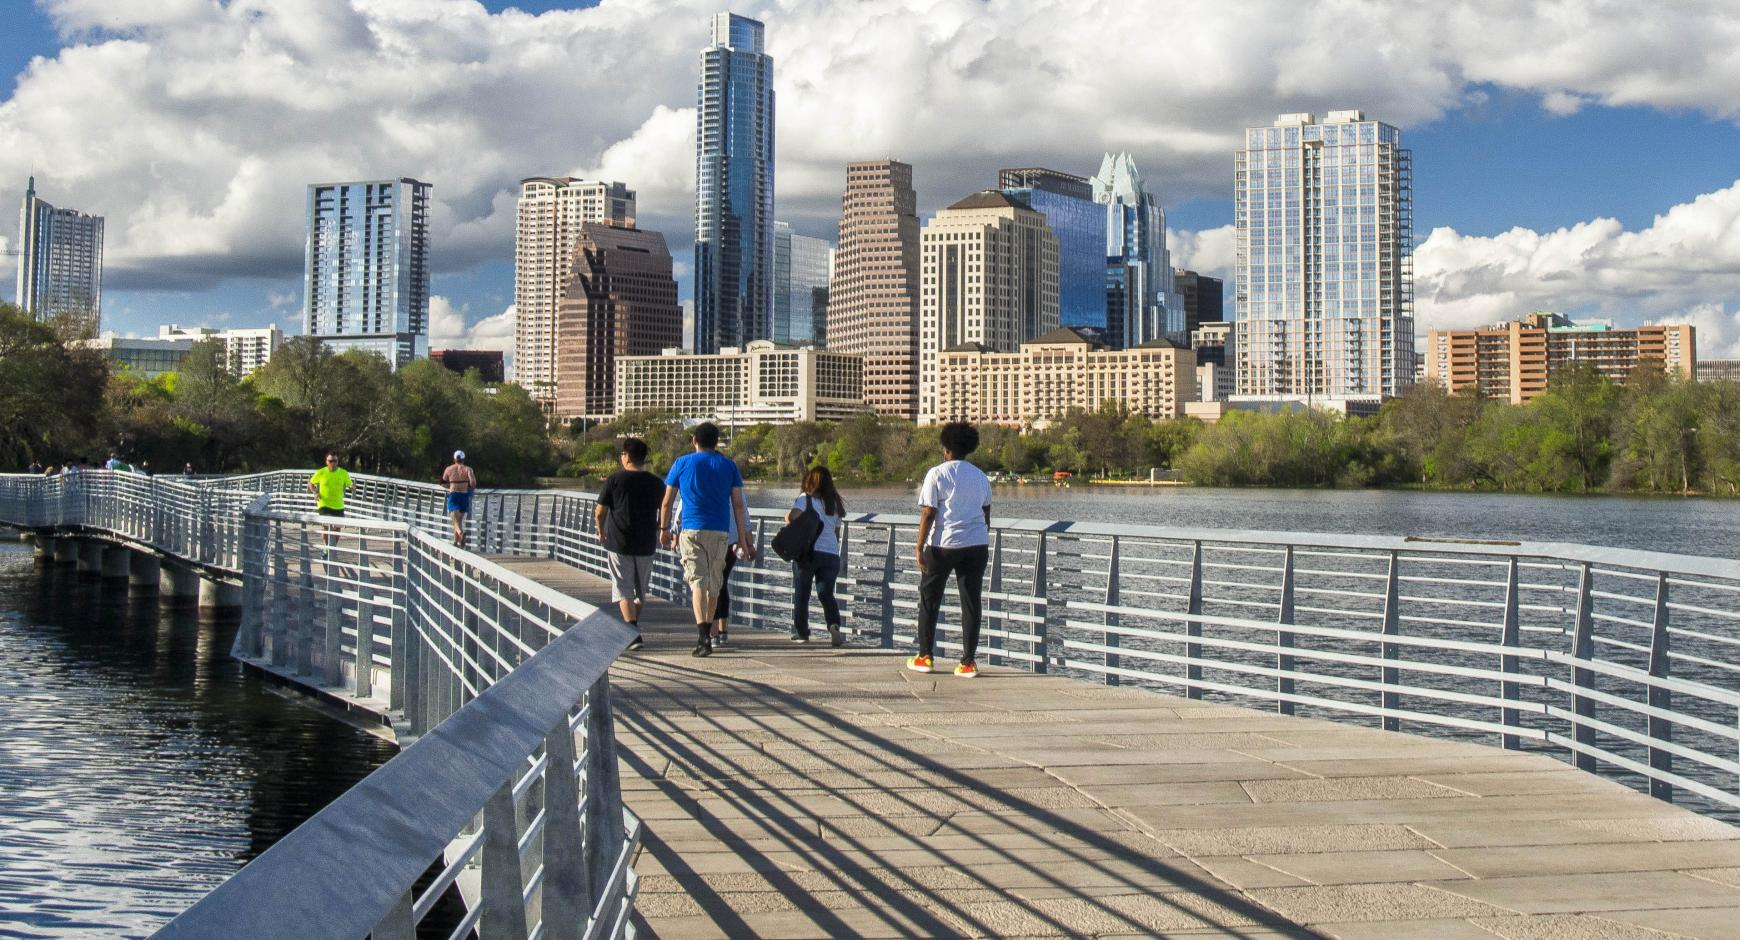 Skyline of Austin from the Hike and Bike Trail